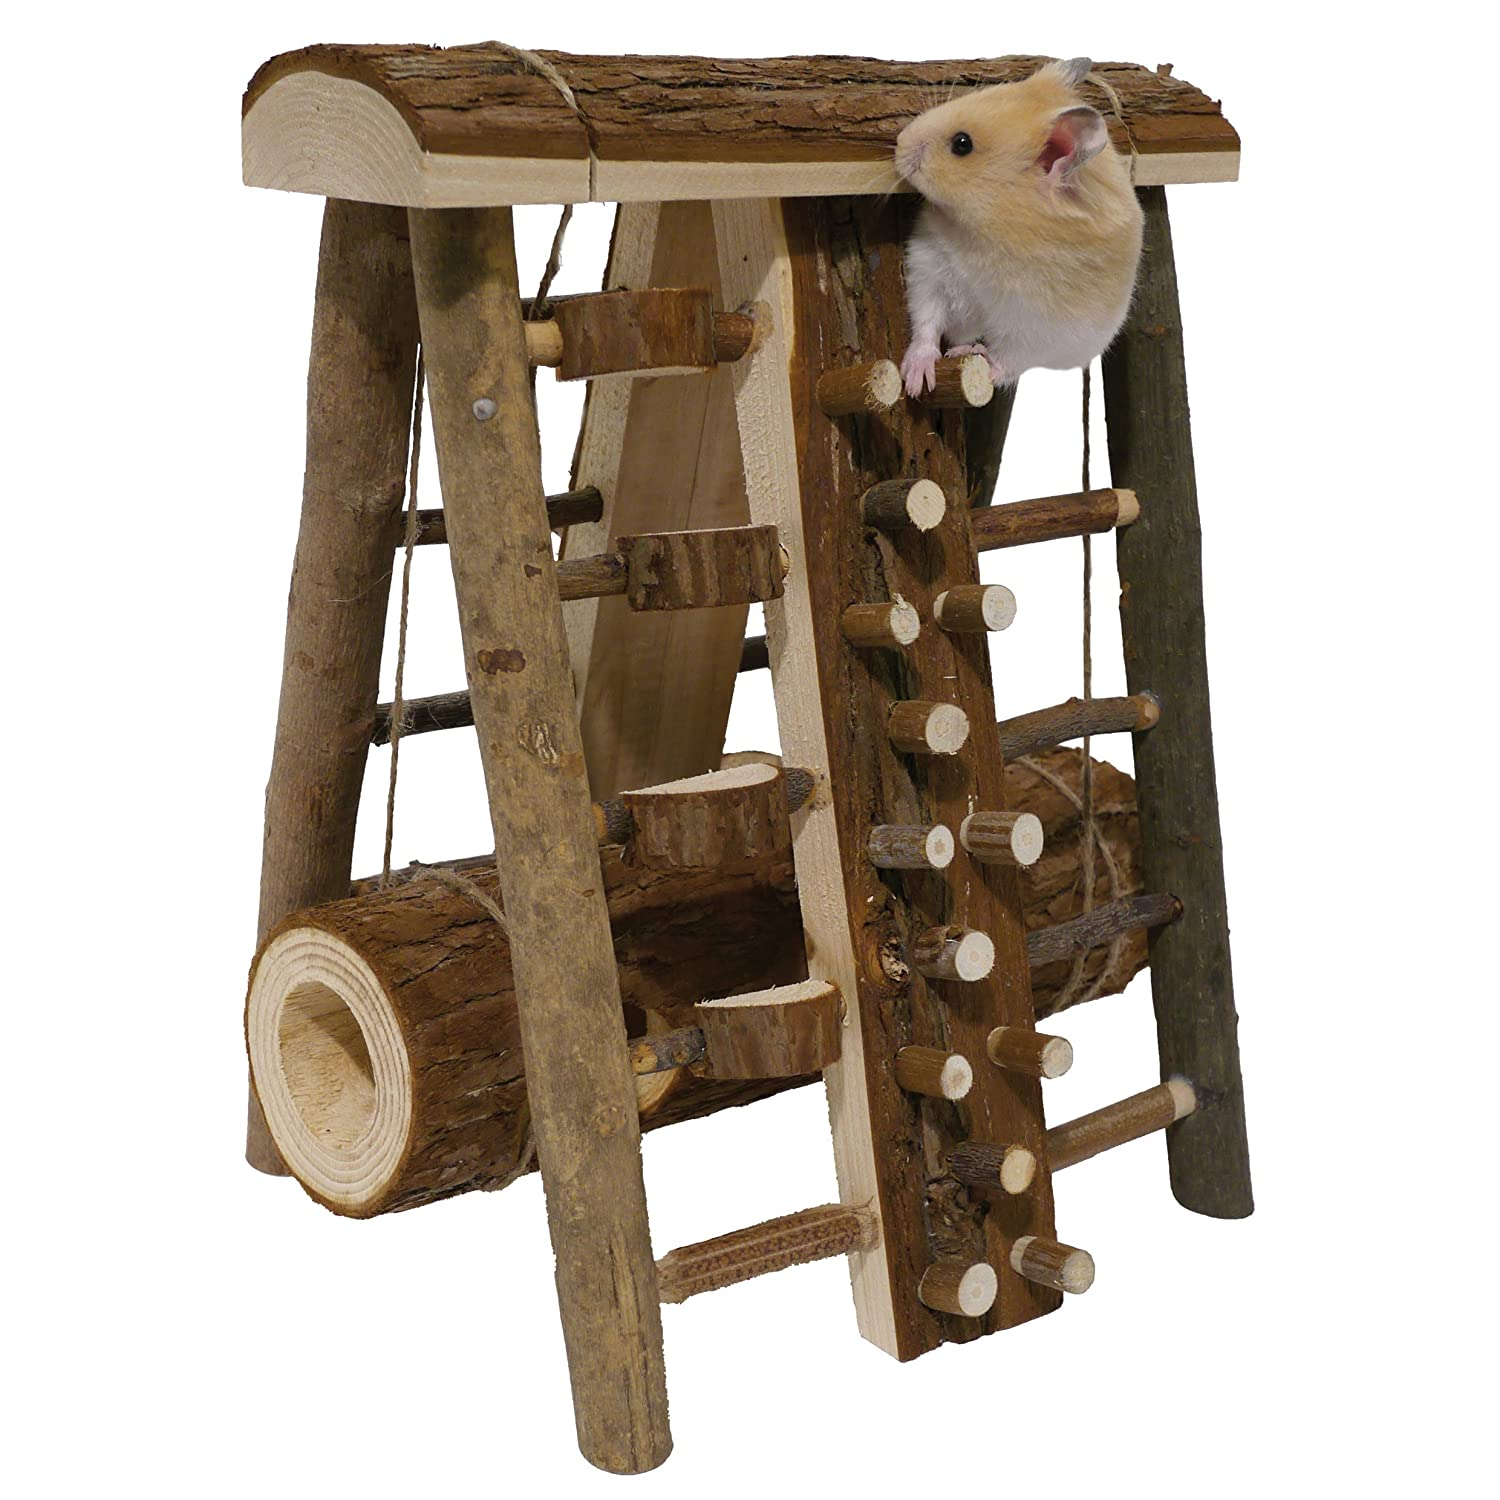 Activity Assault Course - Hamster & Small Animal Toy Rosewood North America 19360